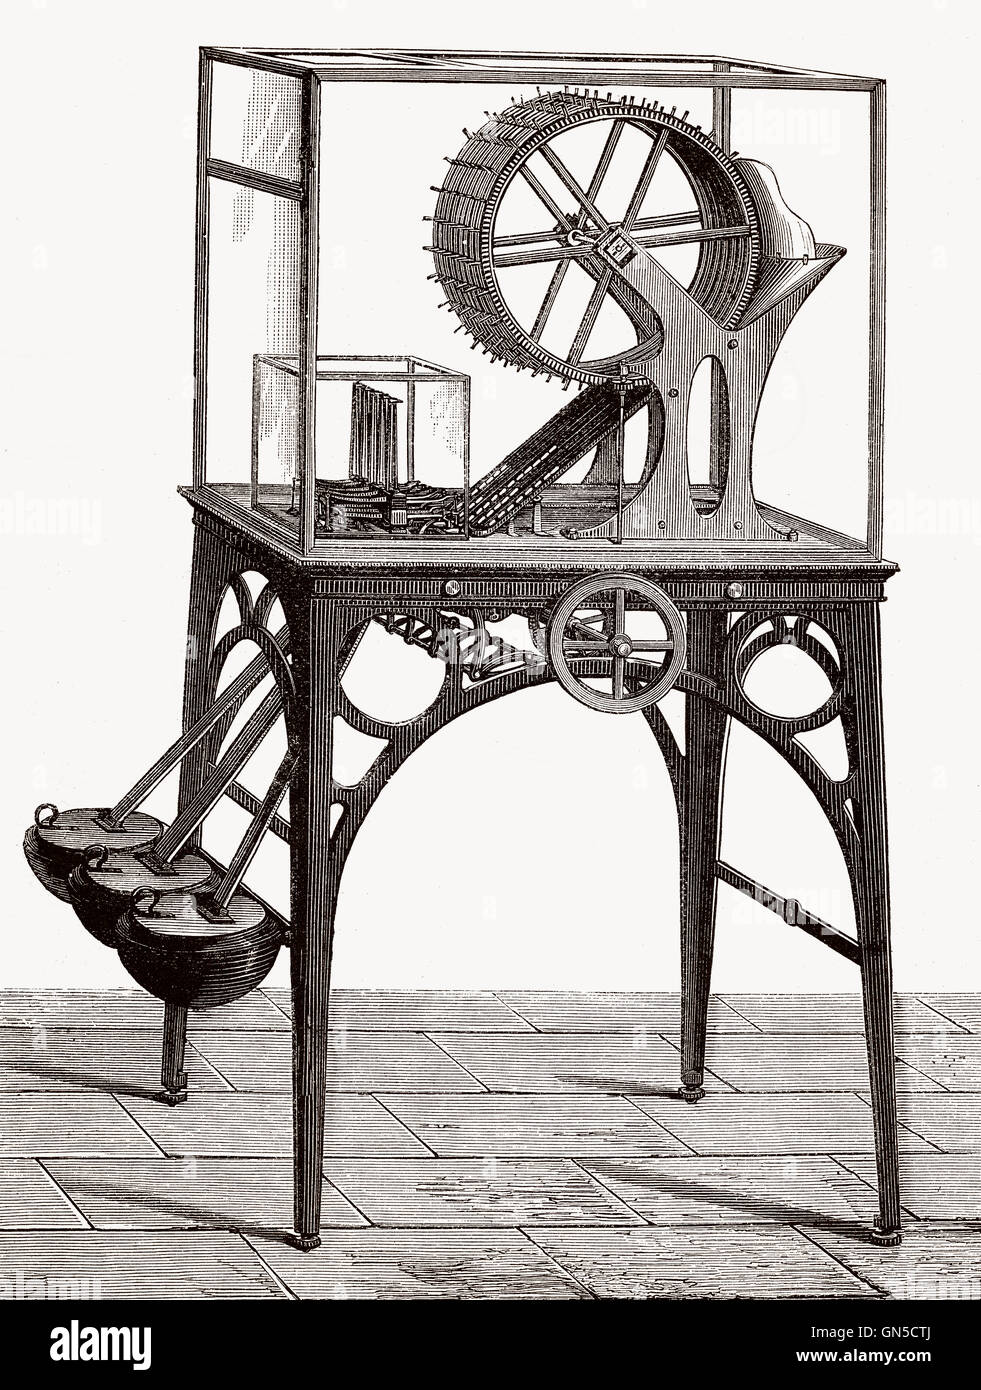 Coin sorter by Armand Pierre Seguier, 1803-1876, a French lawyer and Inventor - Stock Image